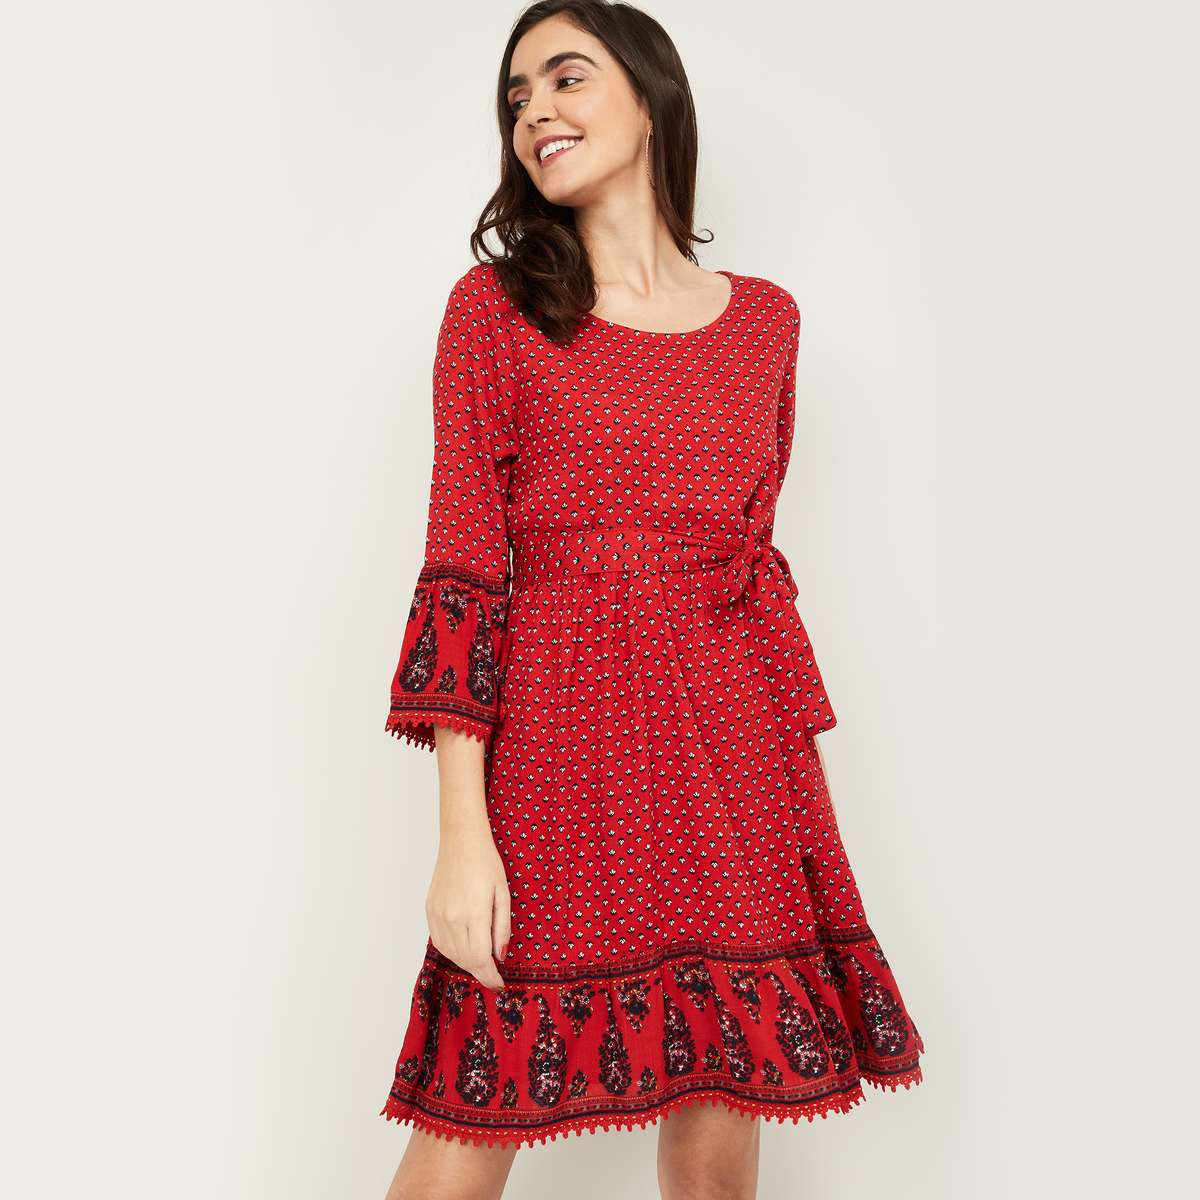 2.FAME FOREVER Women Printed A-Line Dress